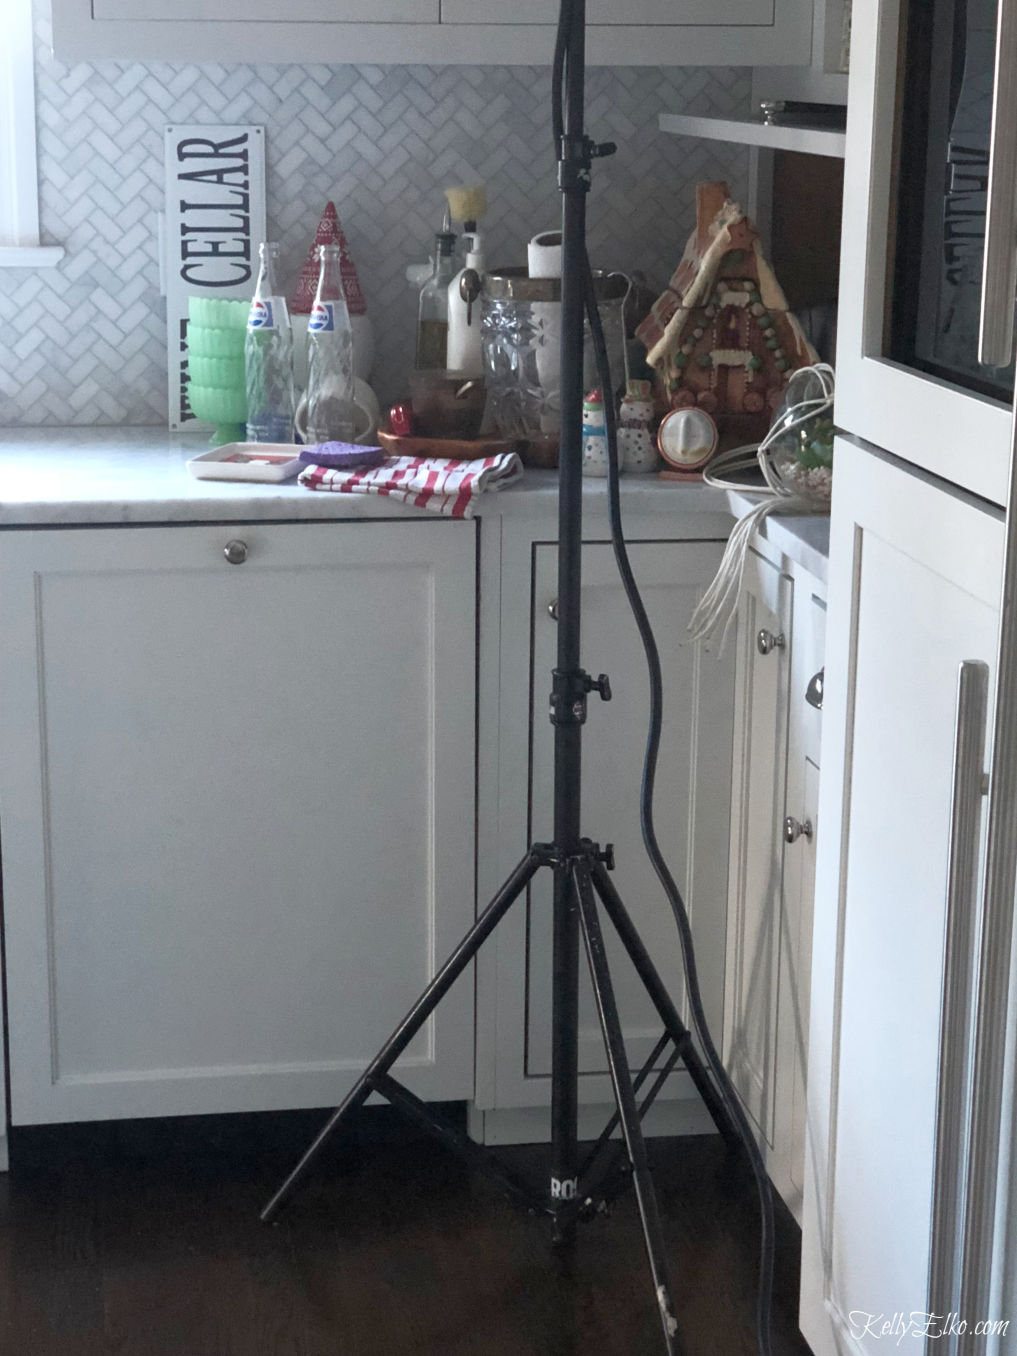 Behind the scenes Better Homes and Gardens photo shoot kellyelko.com